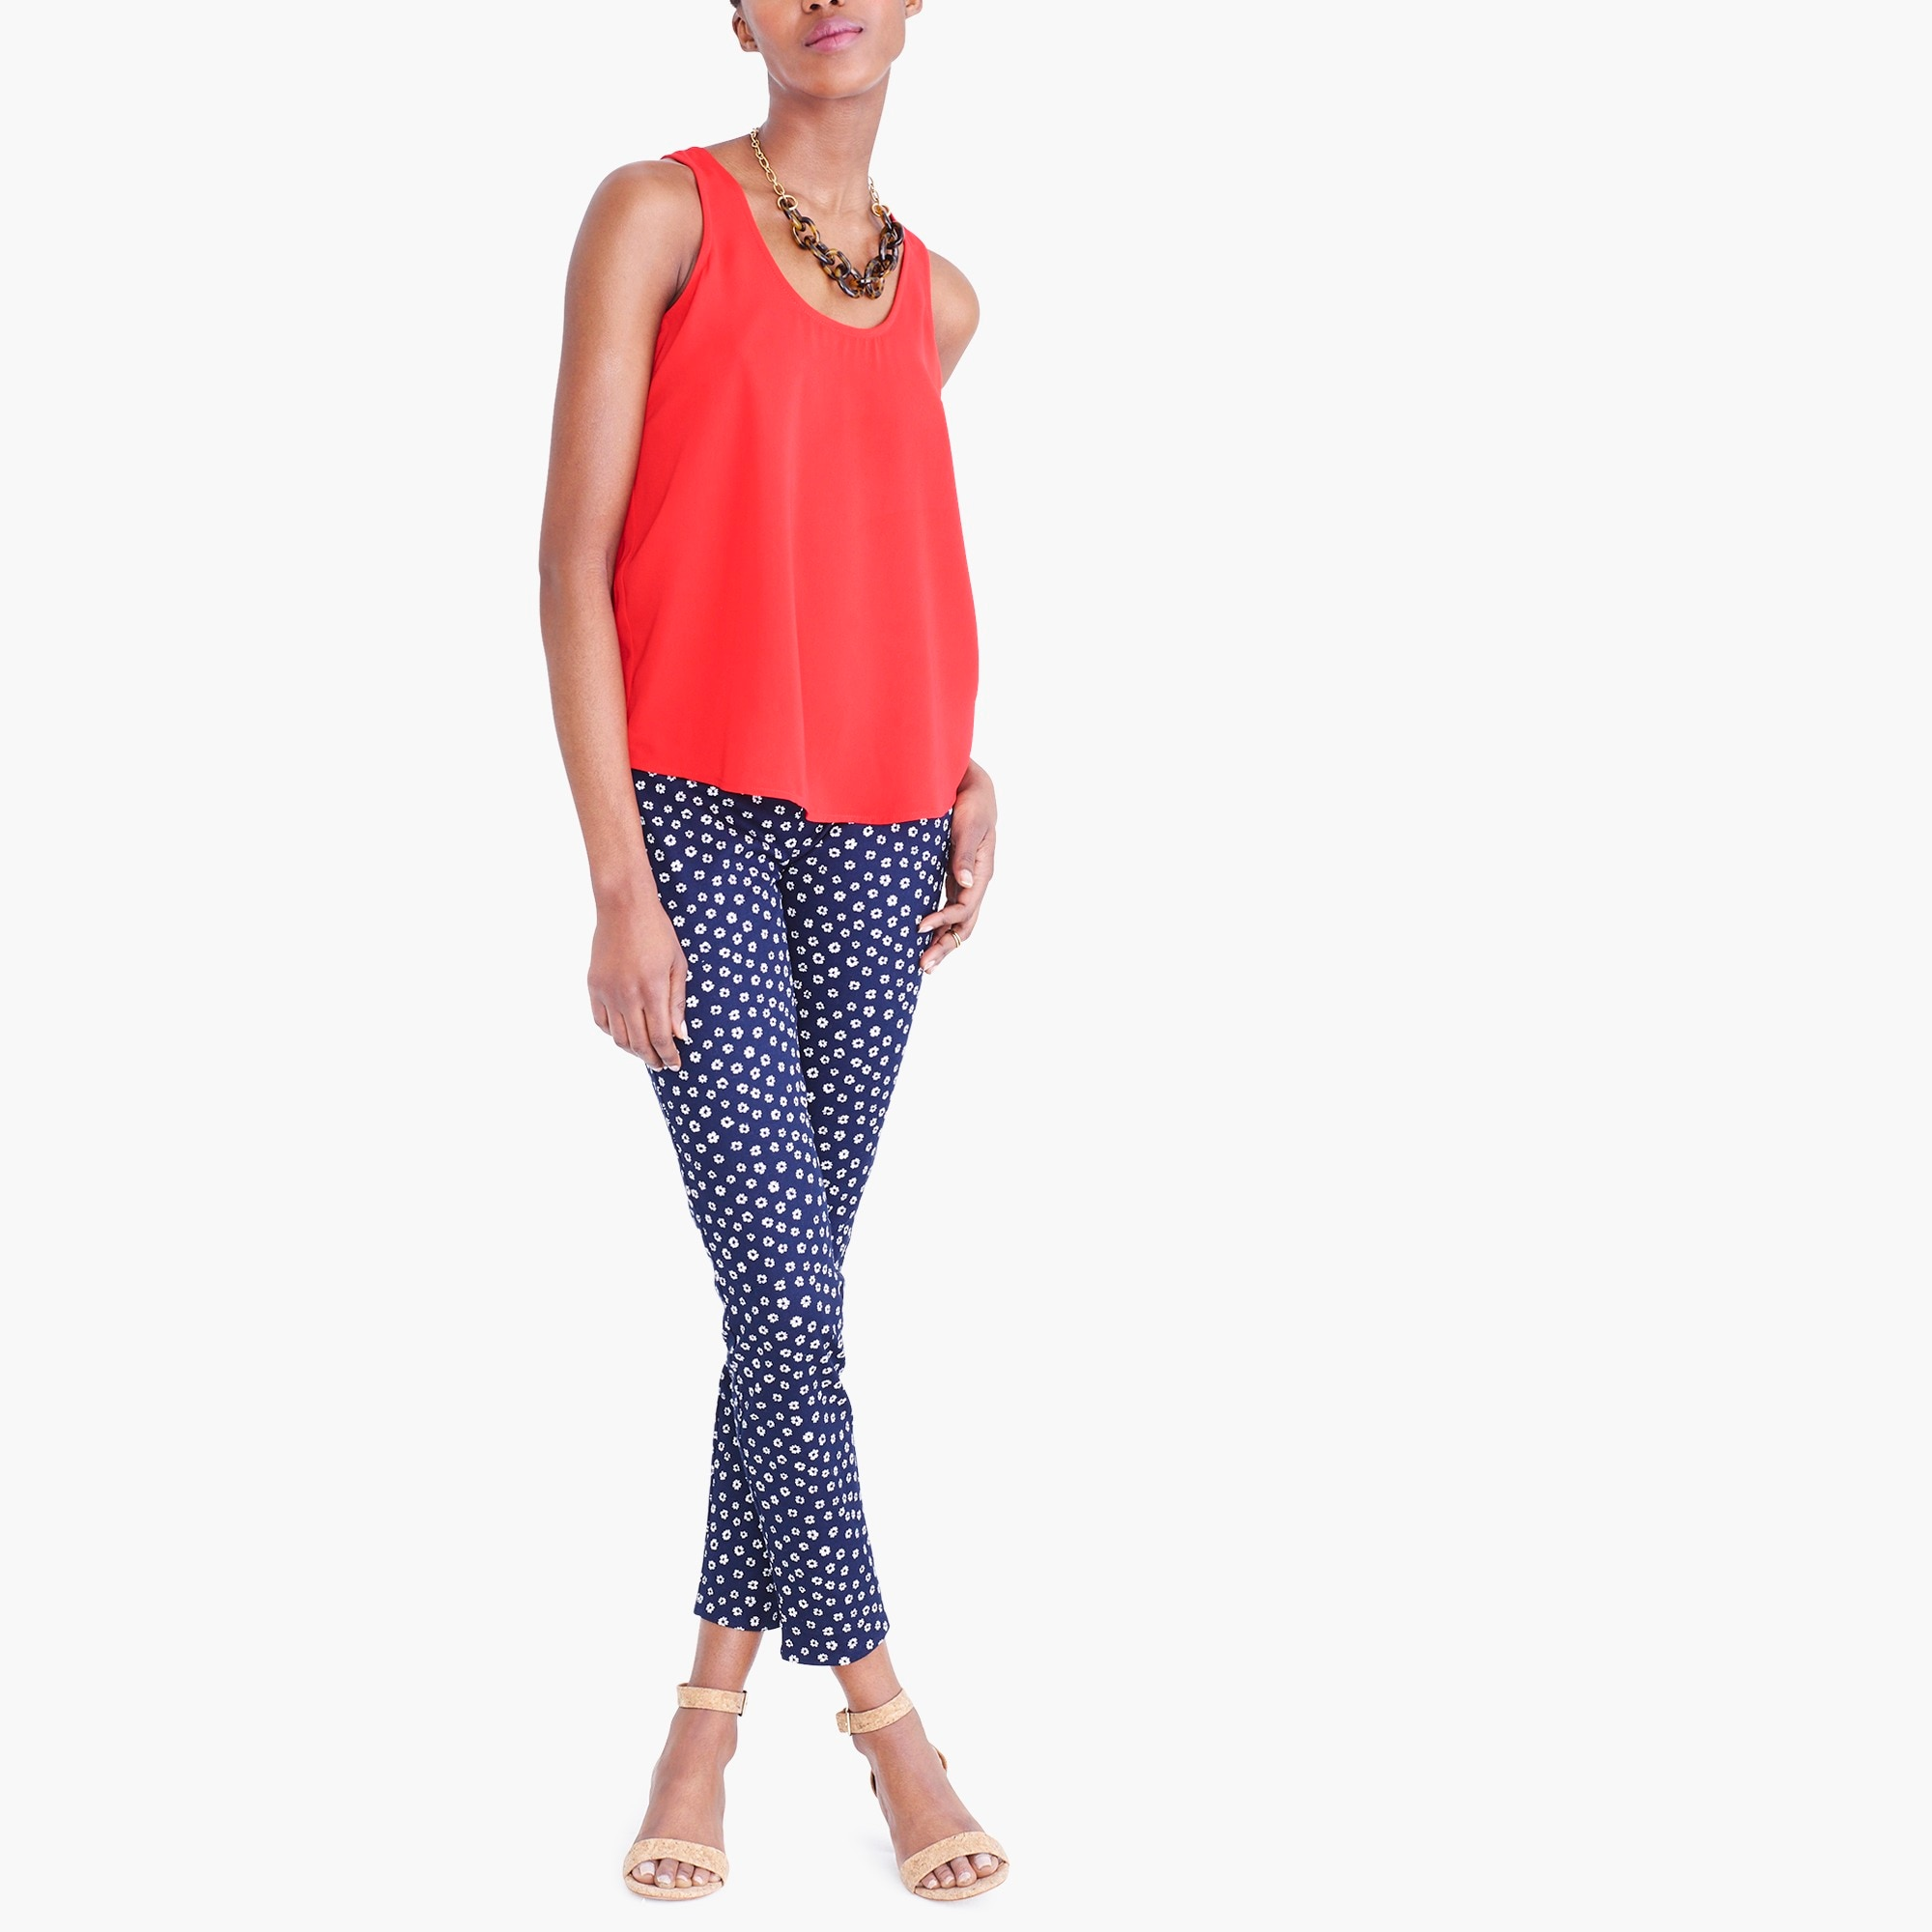 Image 1 for Sleeveless top